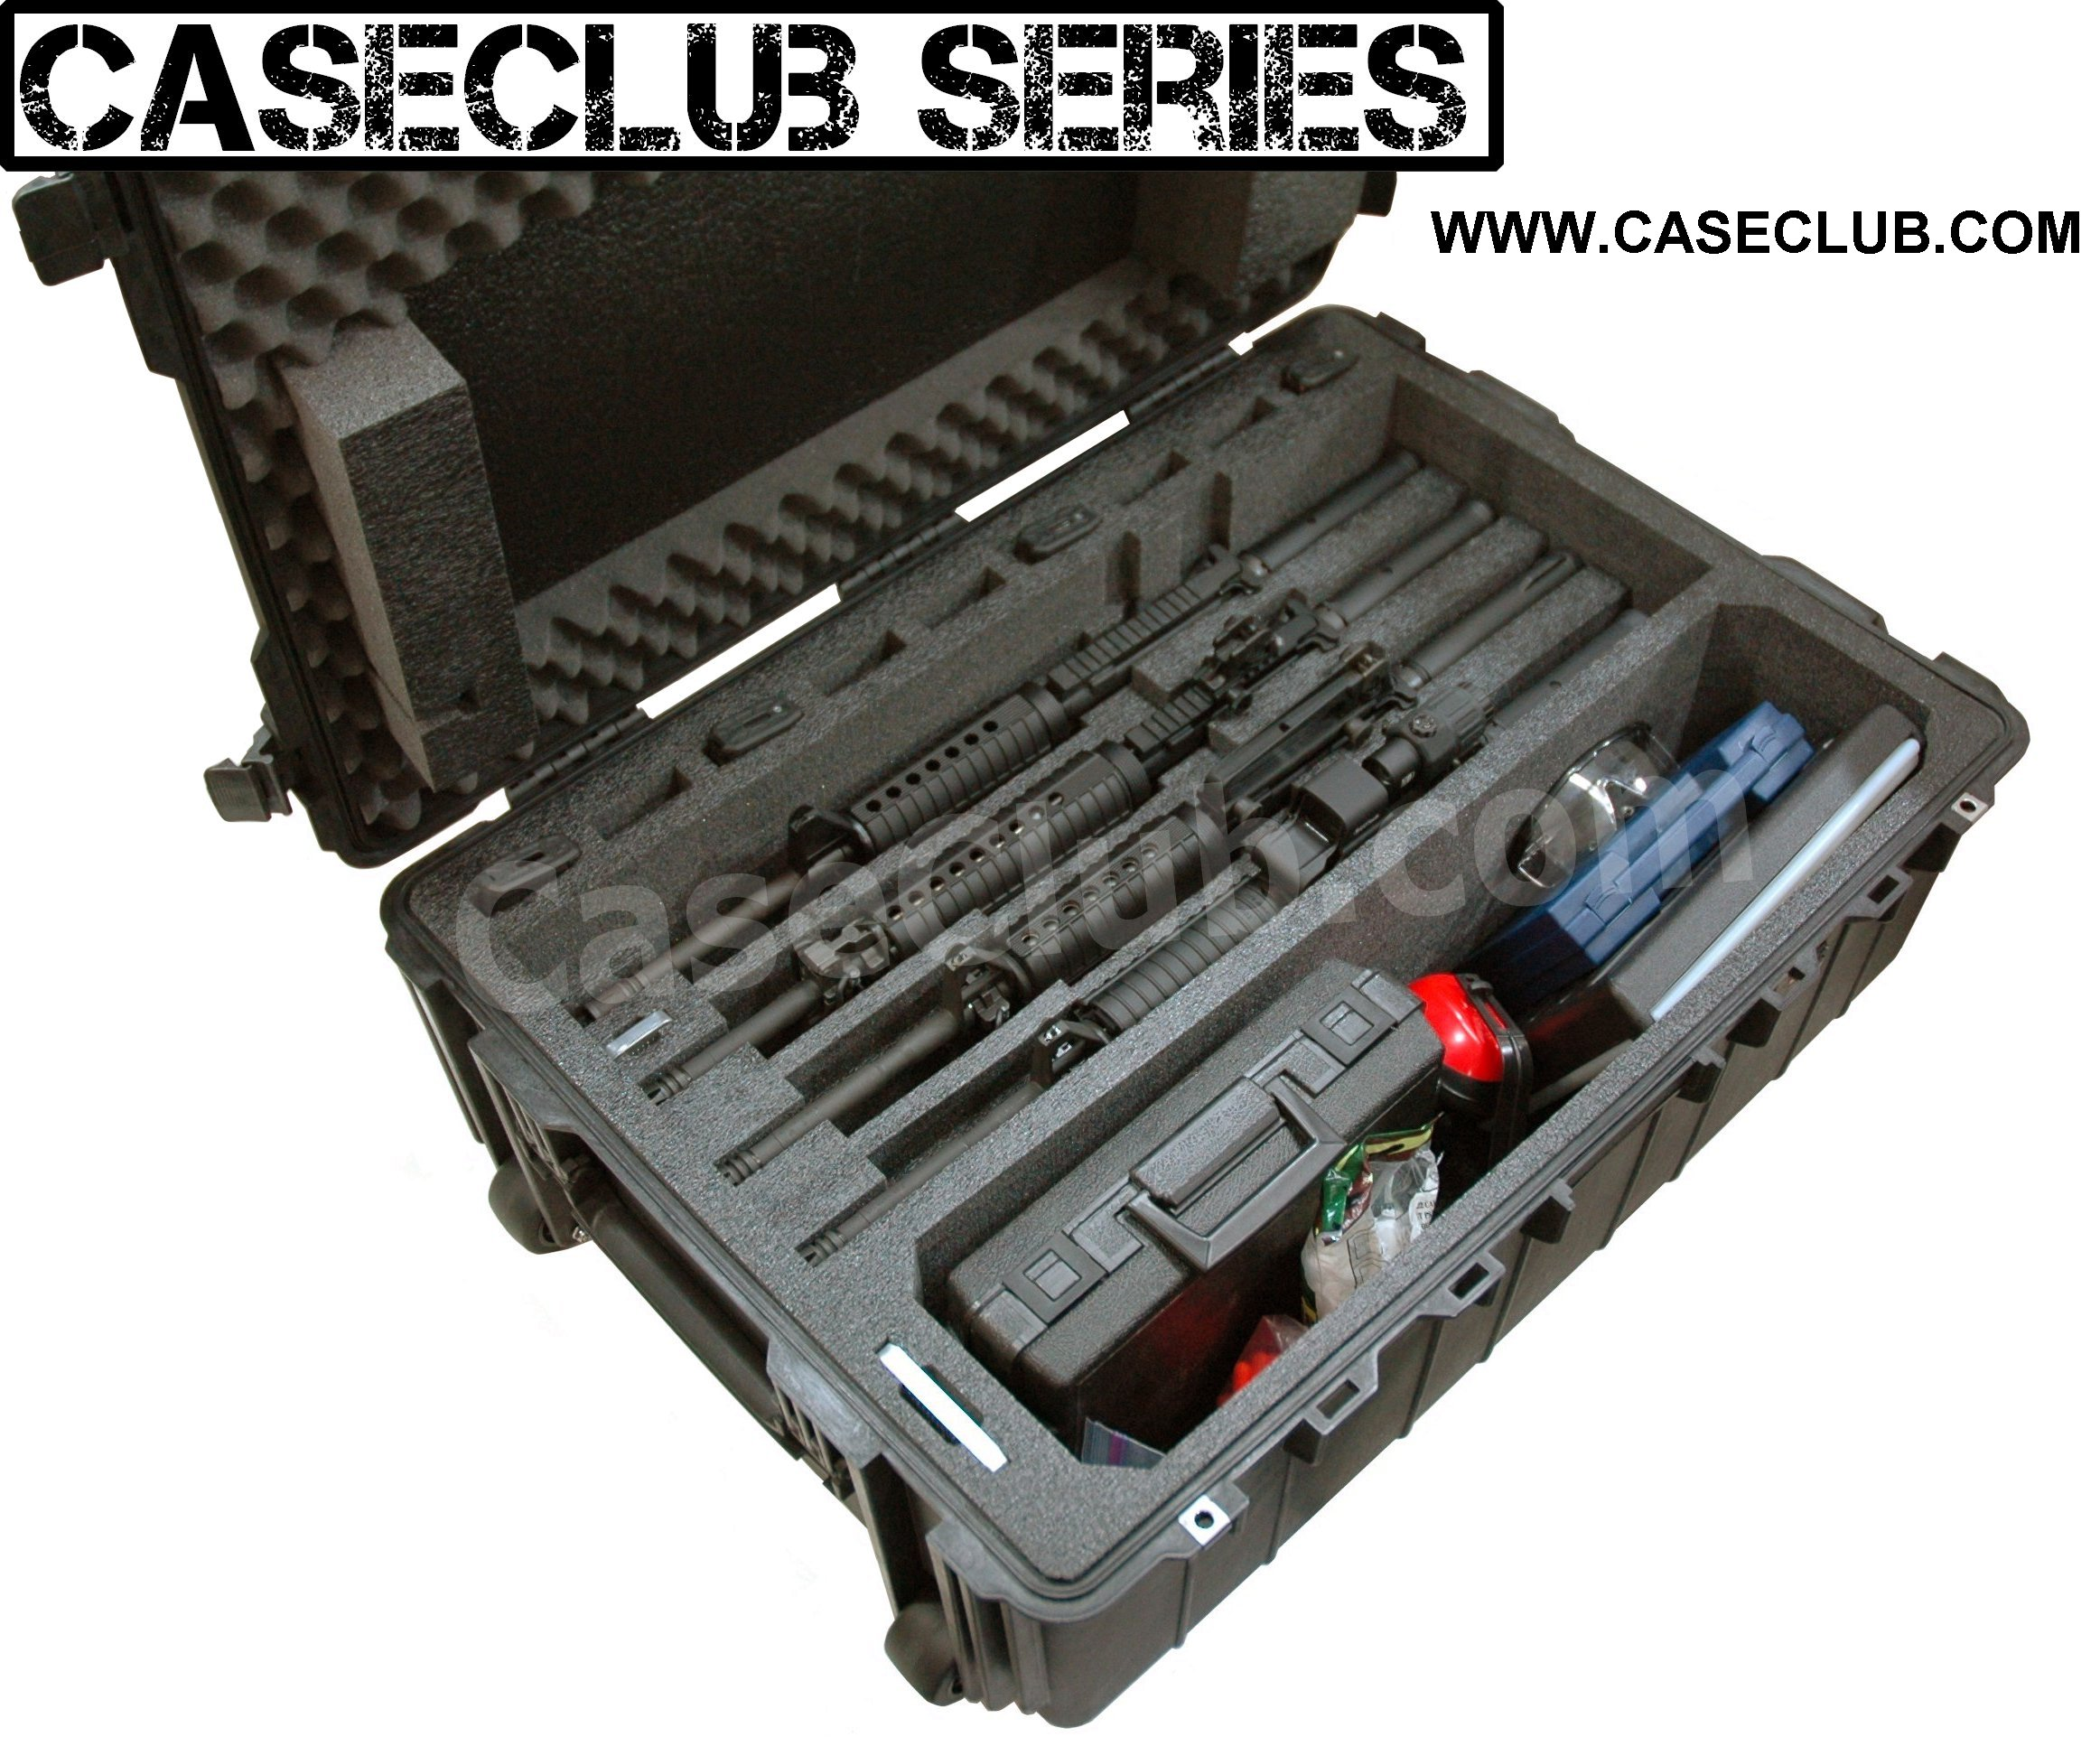 Pelican™ 1730 Case Custom Foam Example: 4 AR15 Rifle